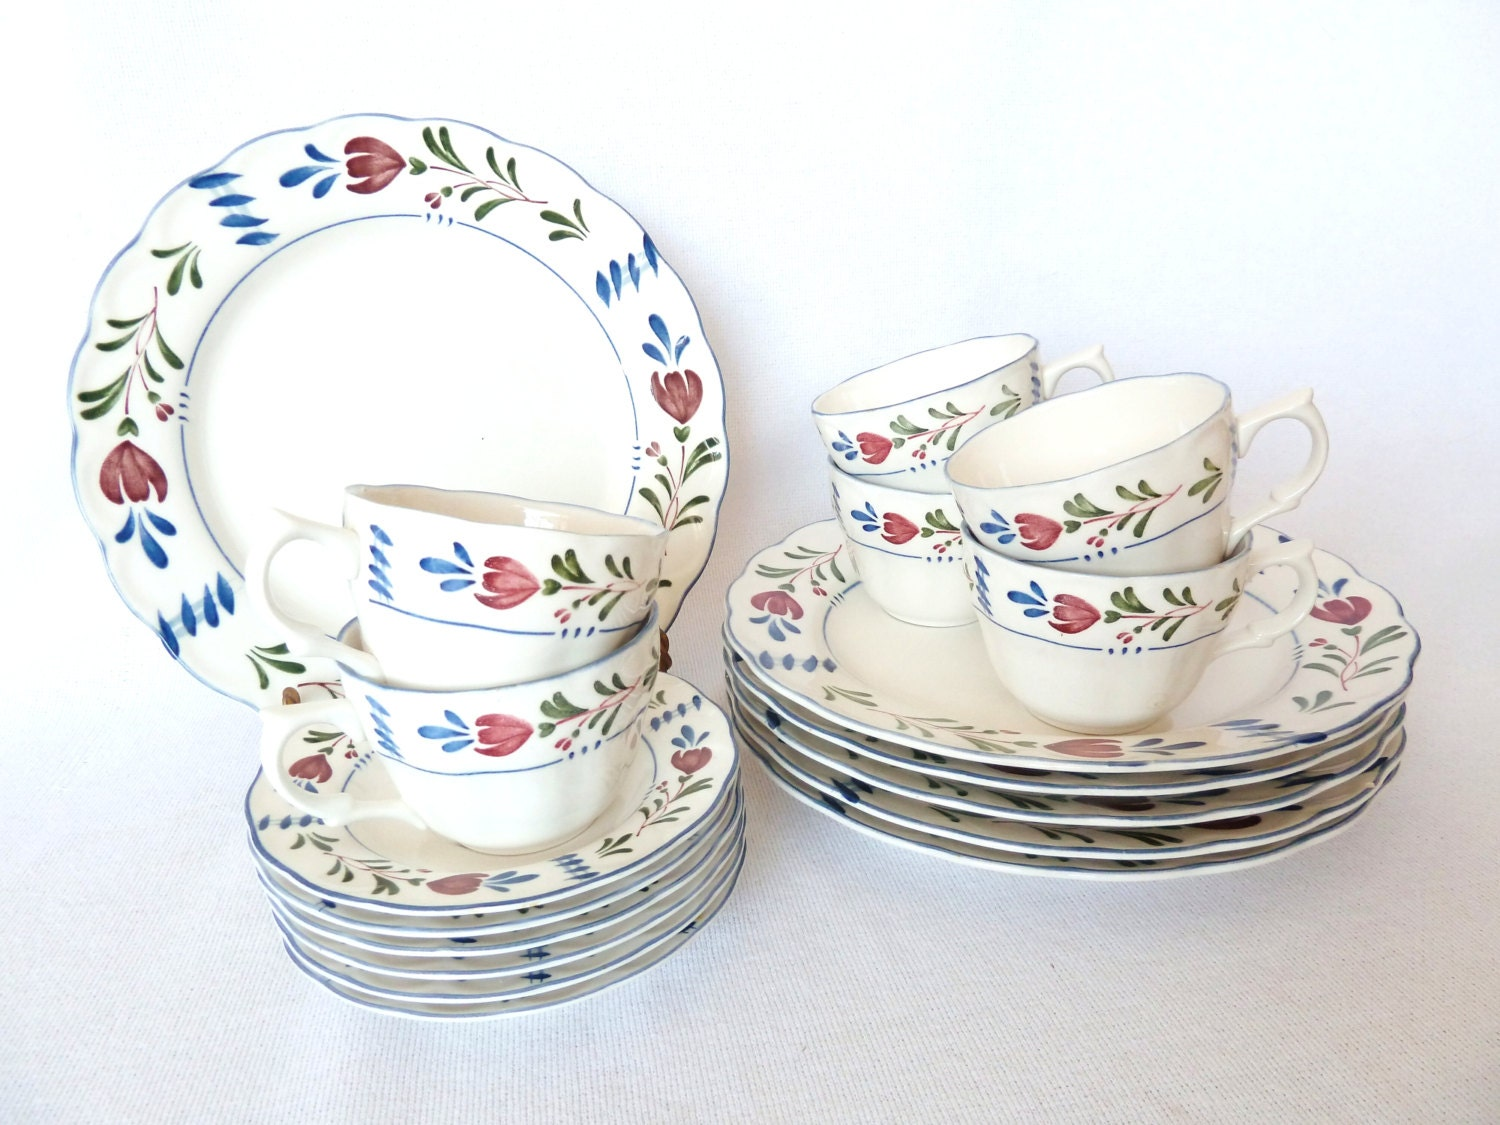 French Country Nikko Provincial Designs Avondale, Dinnerware Set of 6